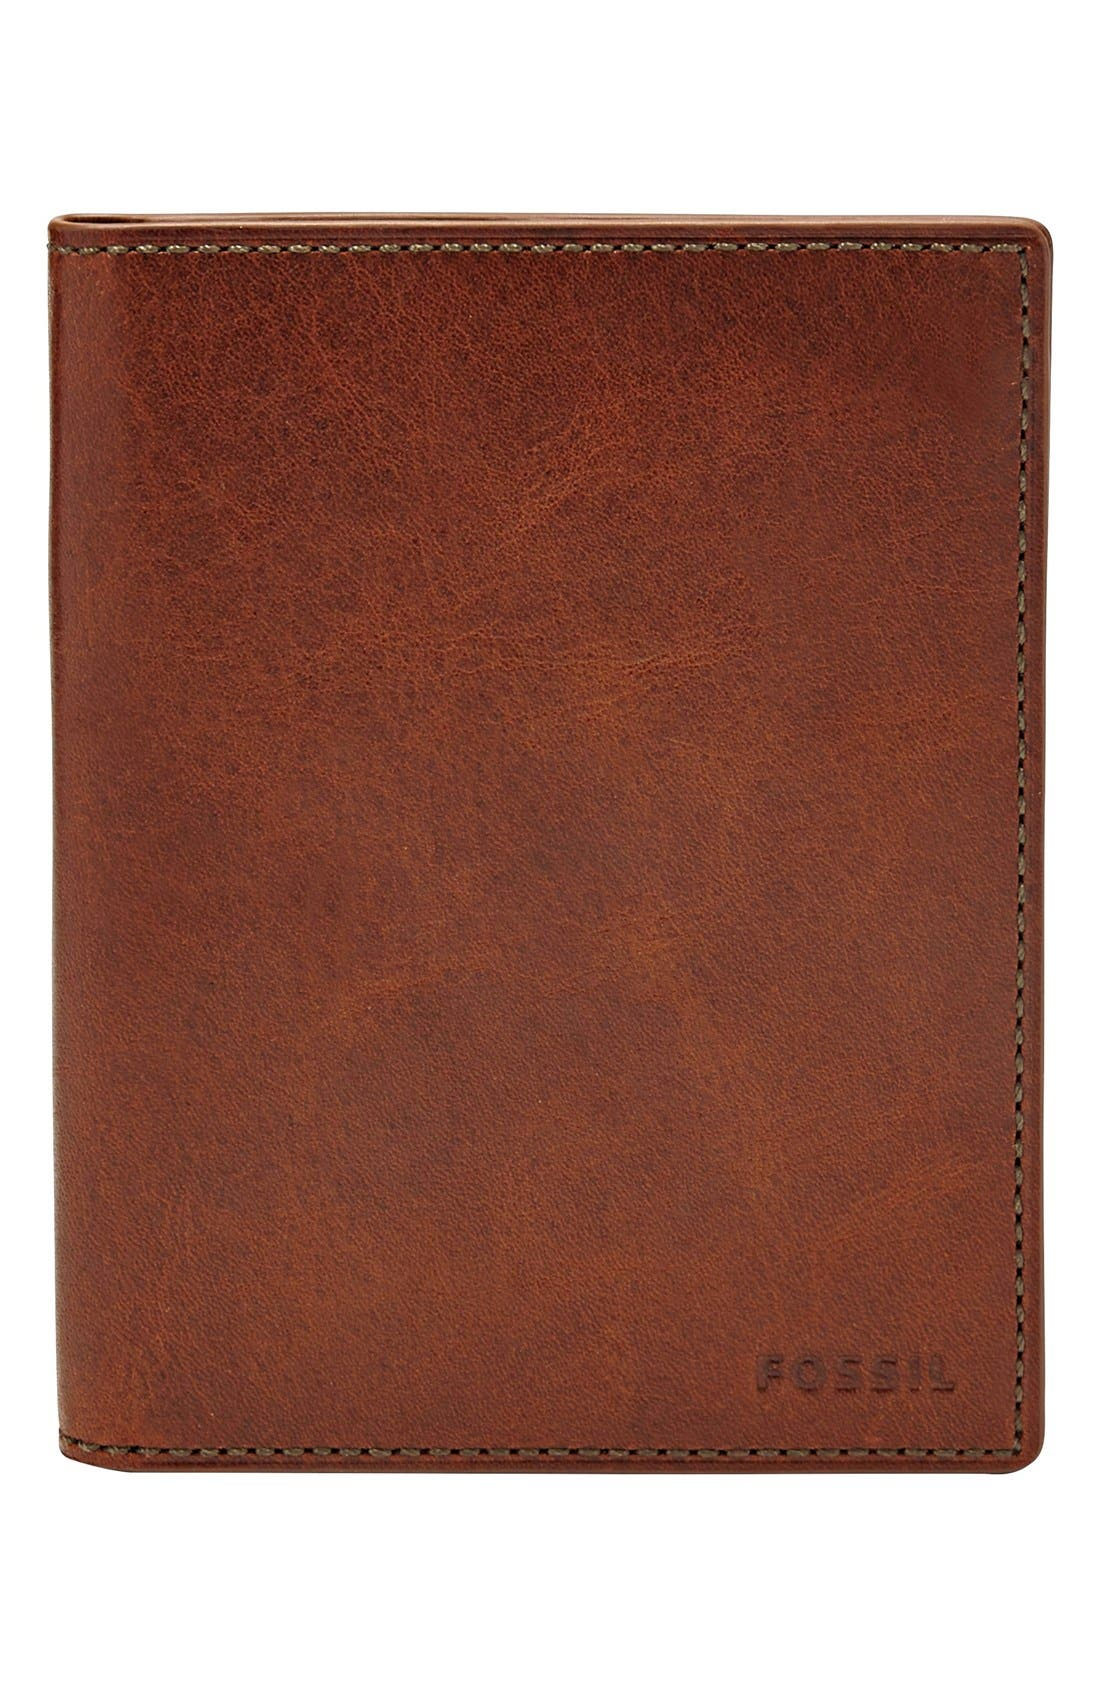 Alternate Image 1 Selected - Fossil Leather Passport Case